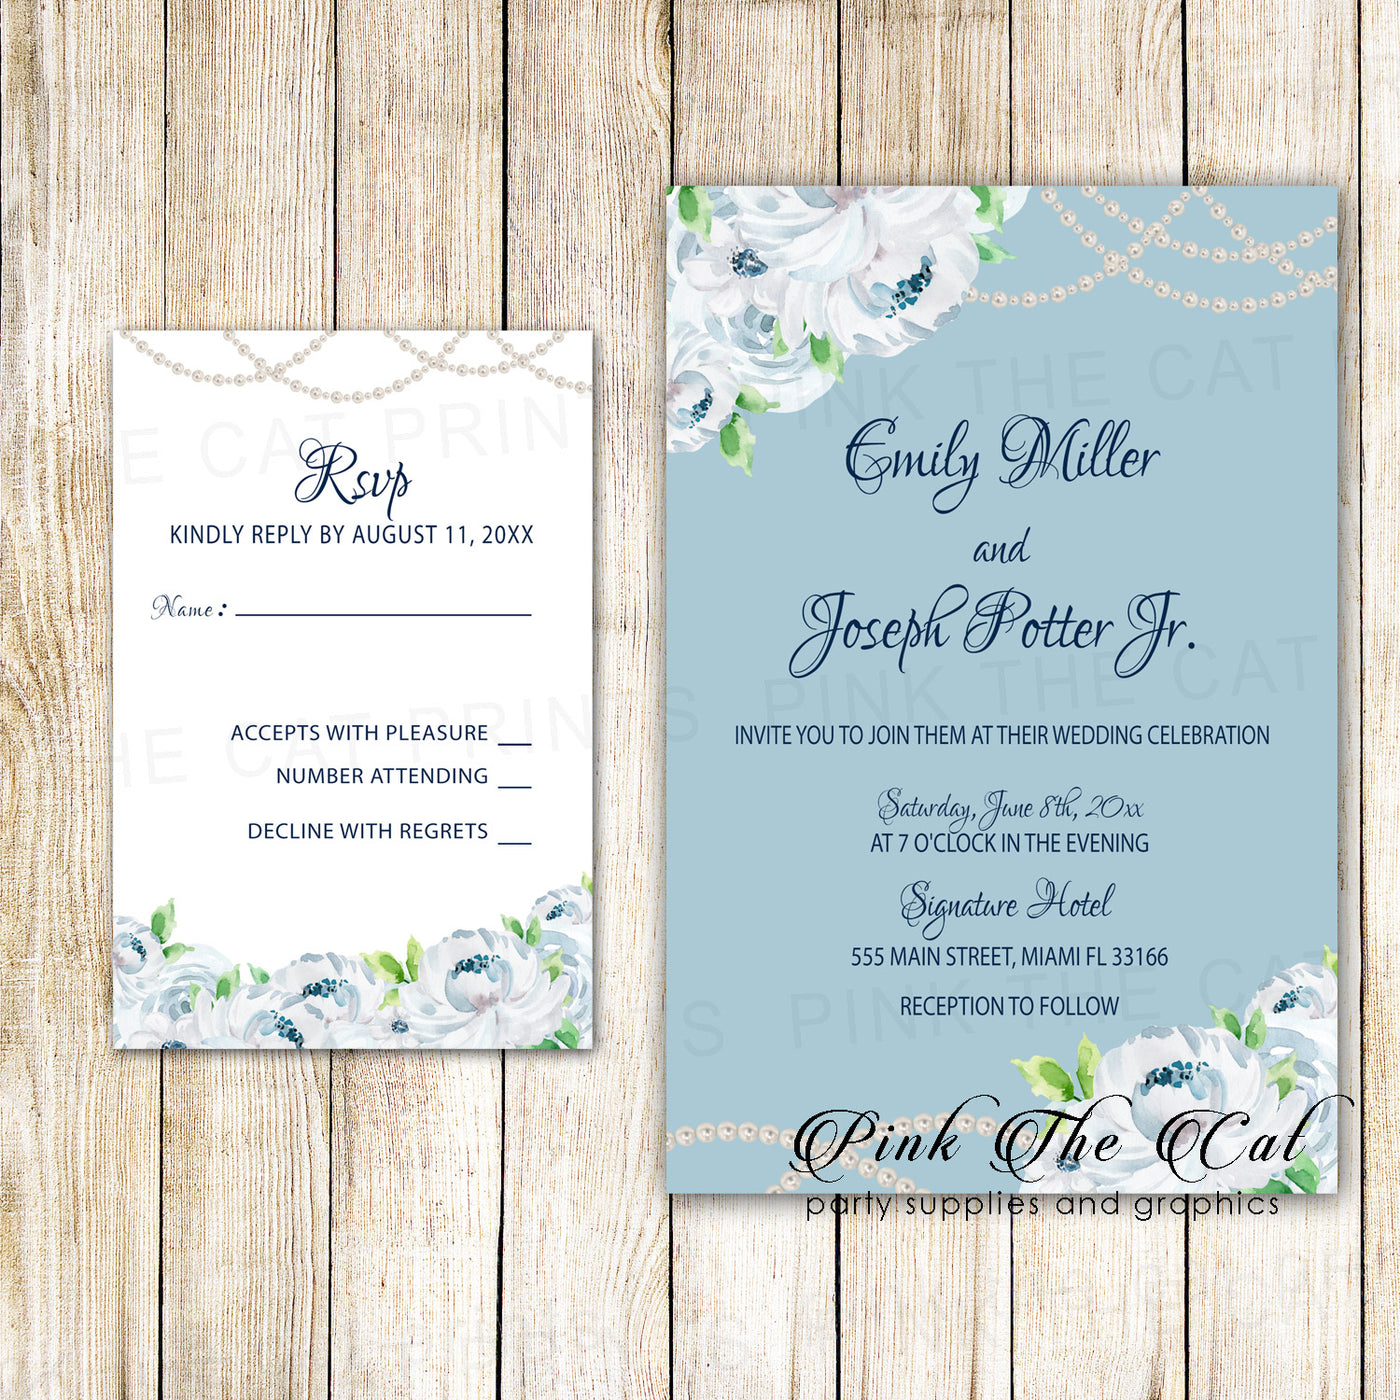 photograph regarding Printable Rsvp Card called Floral Marriage ceremony Invites RSVP Playing cards White Roses Pearls Blue